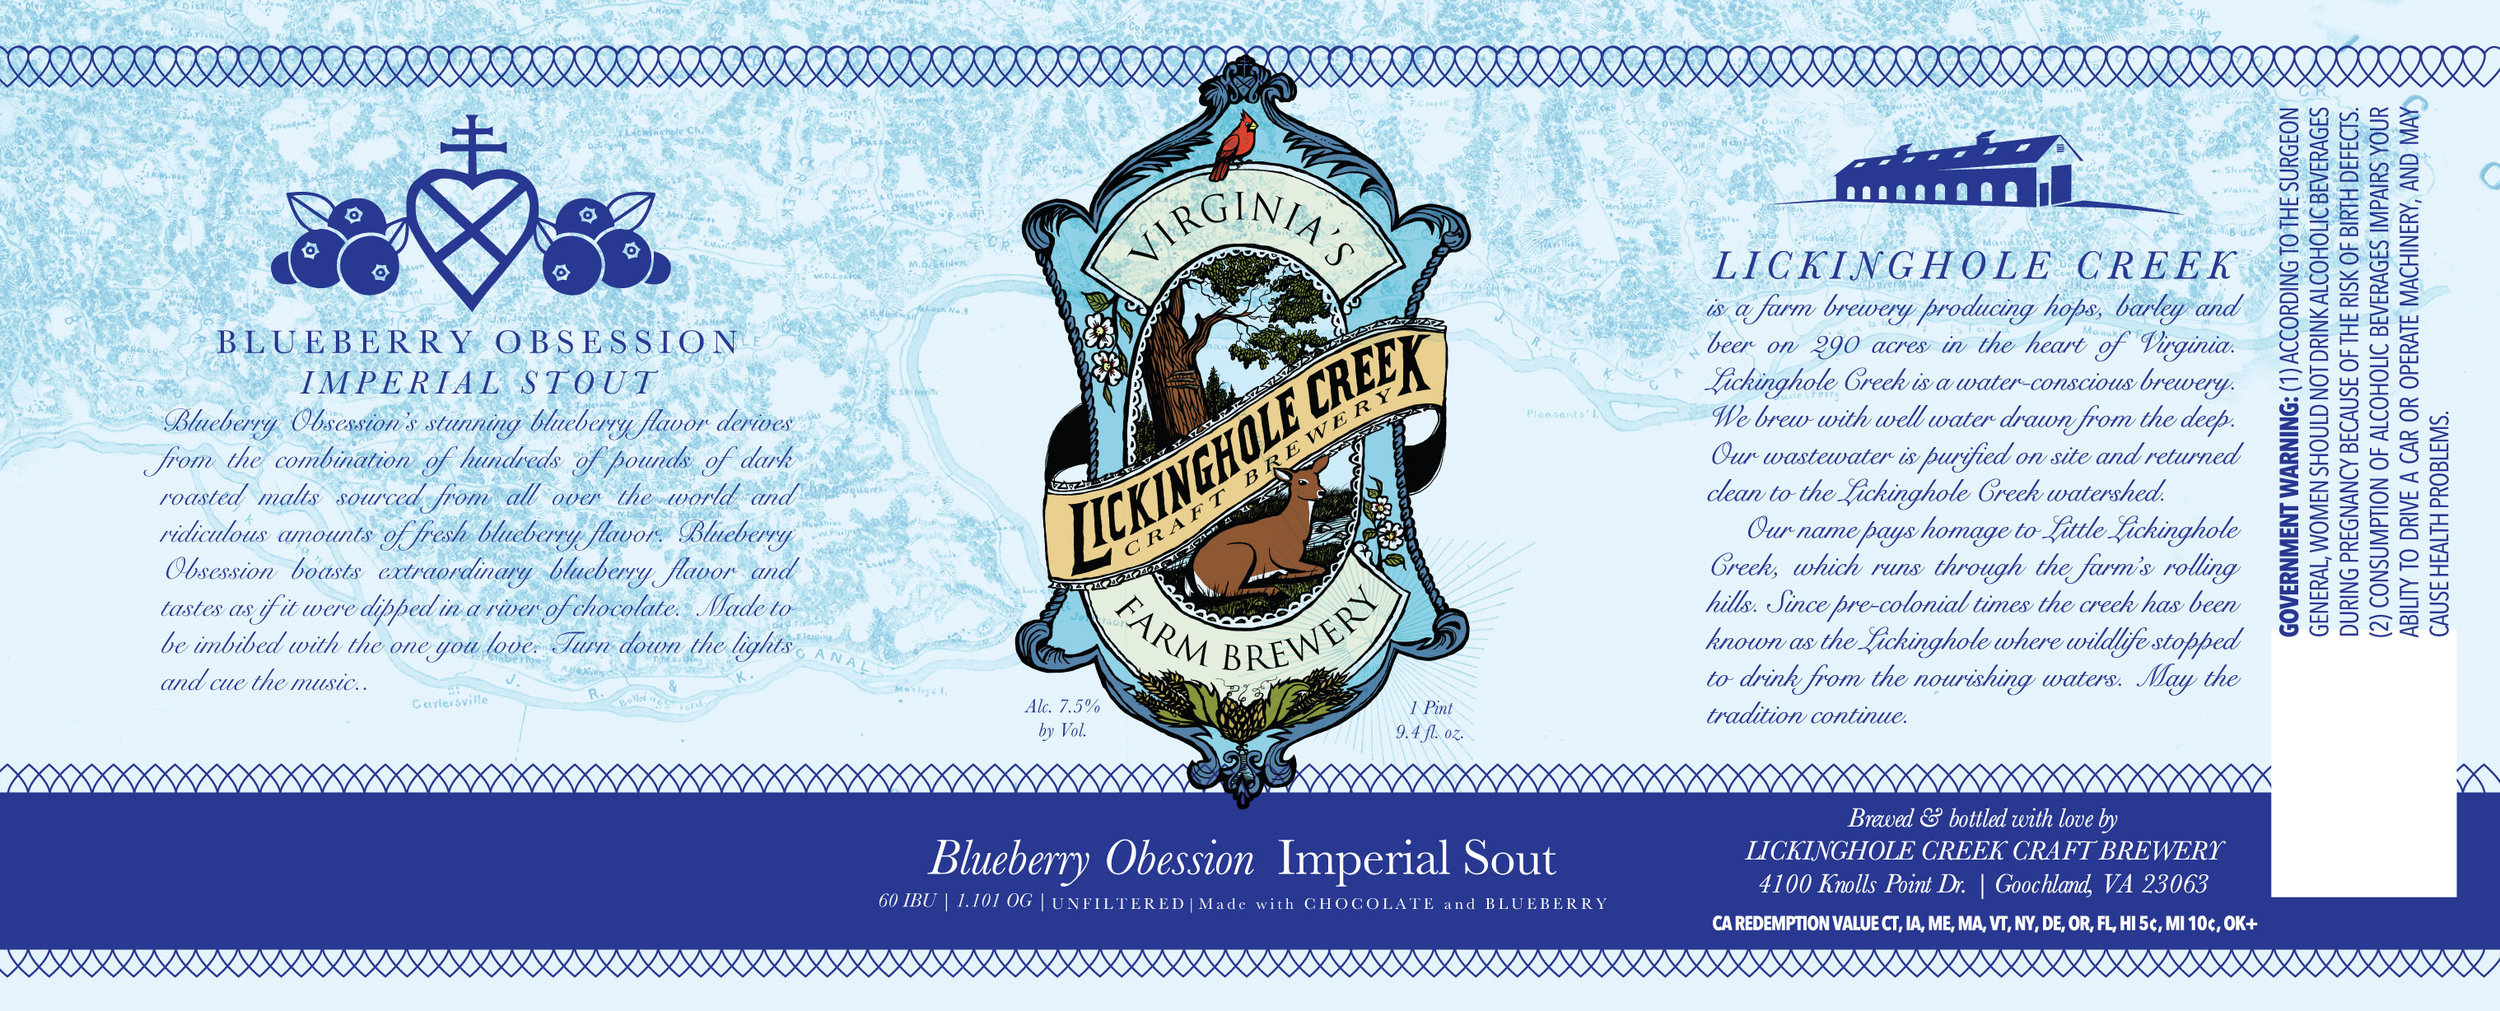 Blueberry Obsession Chocolate Stout 2018 Release